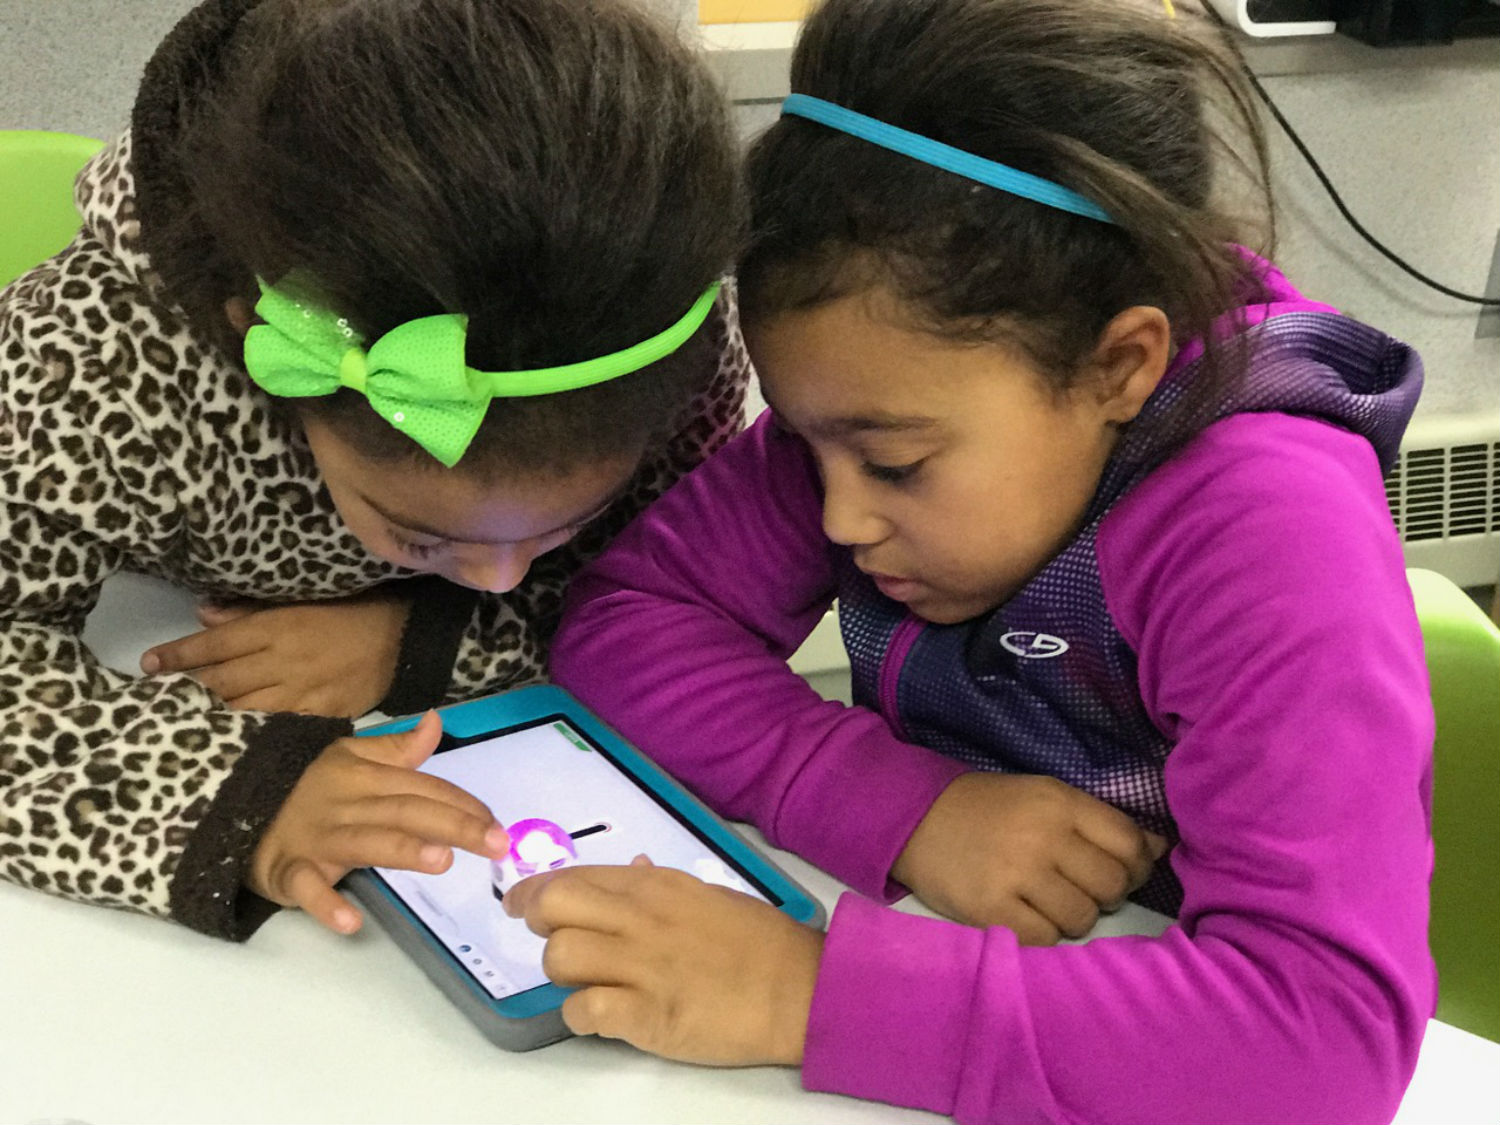 Students explore digital tools for learning in the AT&T Classroom